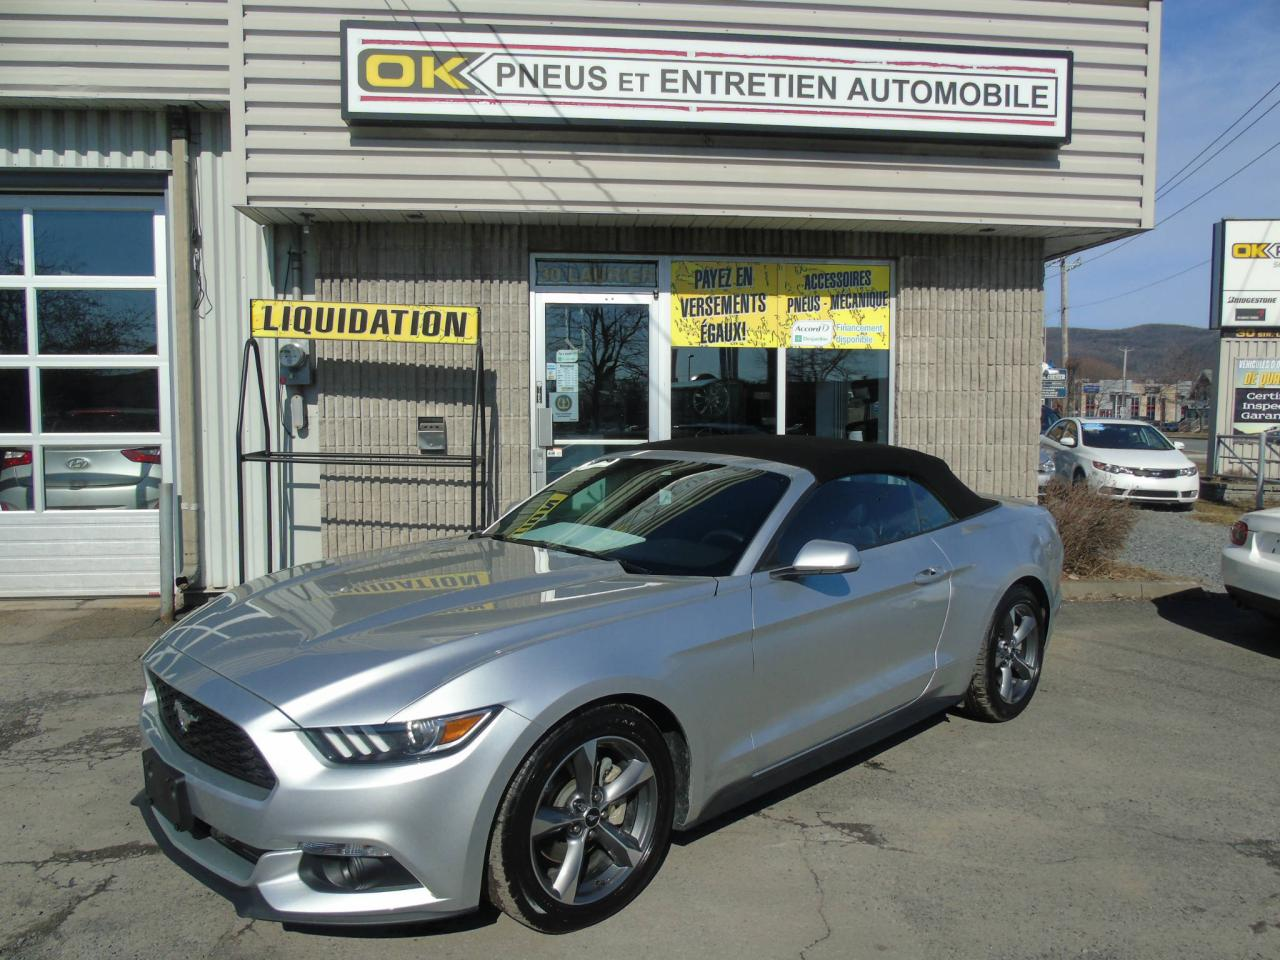 Used 2015 Ford Mustang Convertible For Sale In Beloeil Quebec